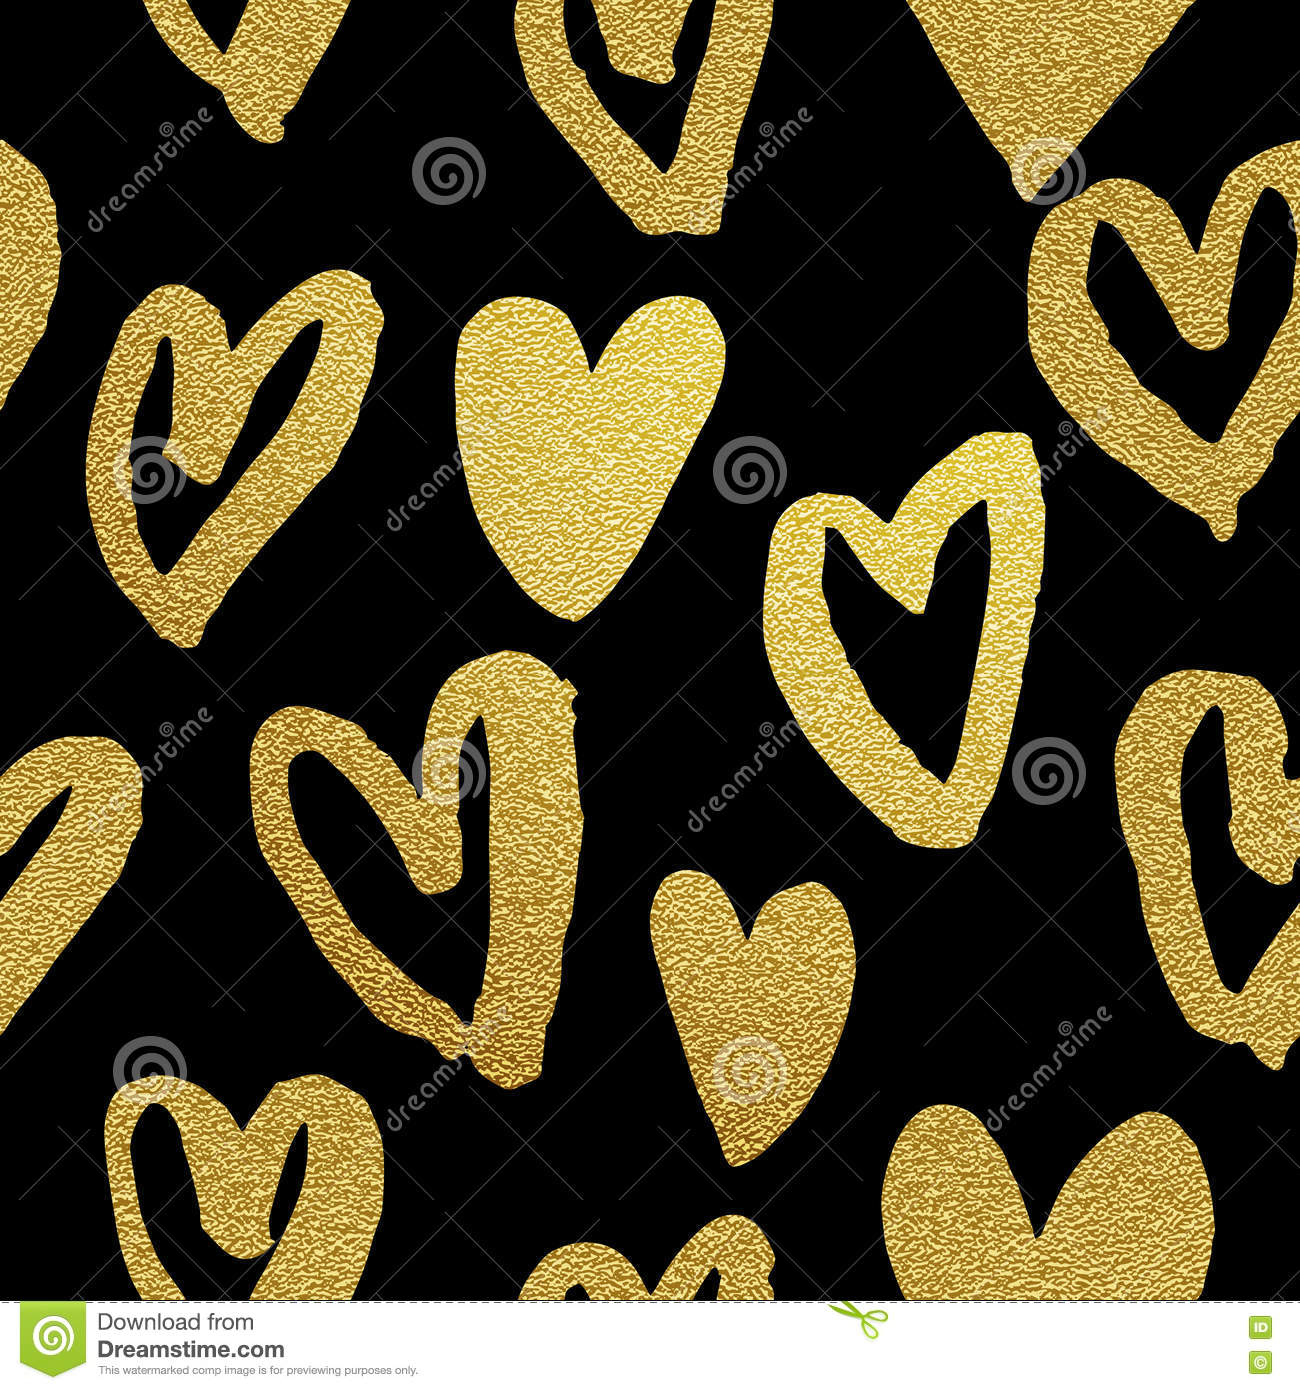 a5733f0197c4 Hearts pattern of gold glitter. Valentine Day golden glittering hearts  black background. Gold foil heart seamless design 14 February love  celebration.